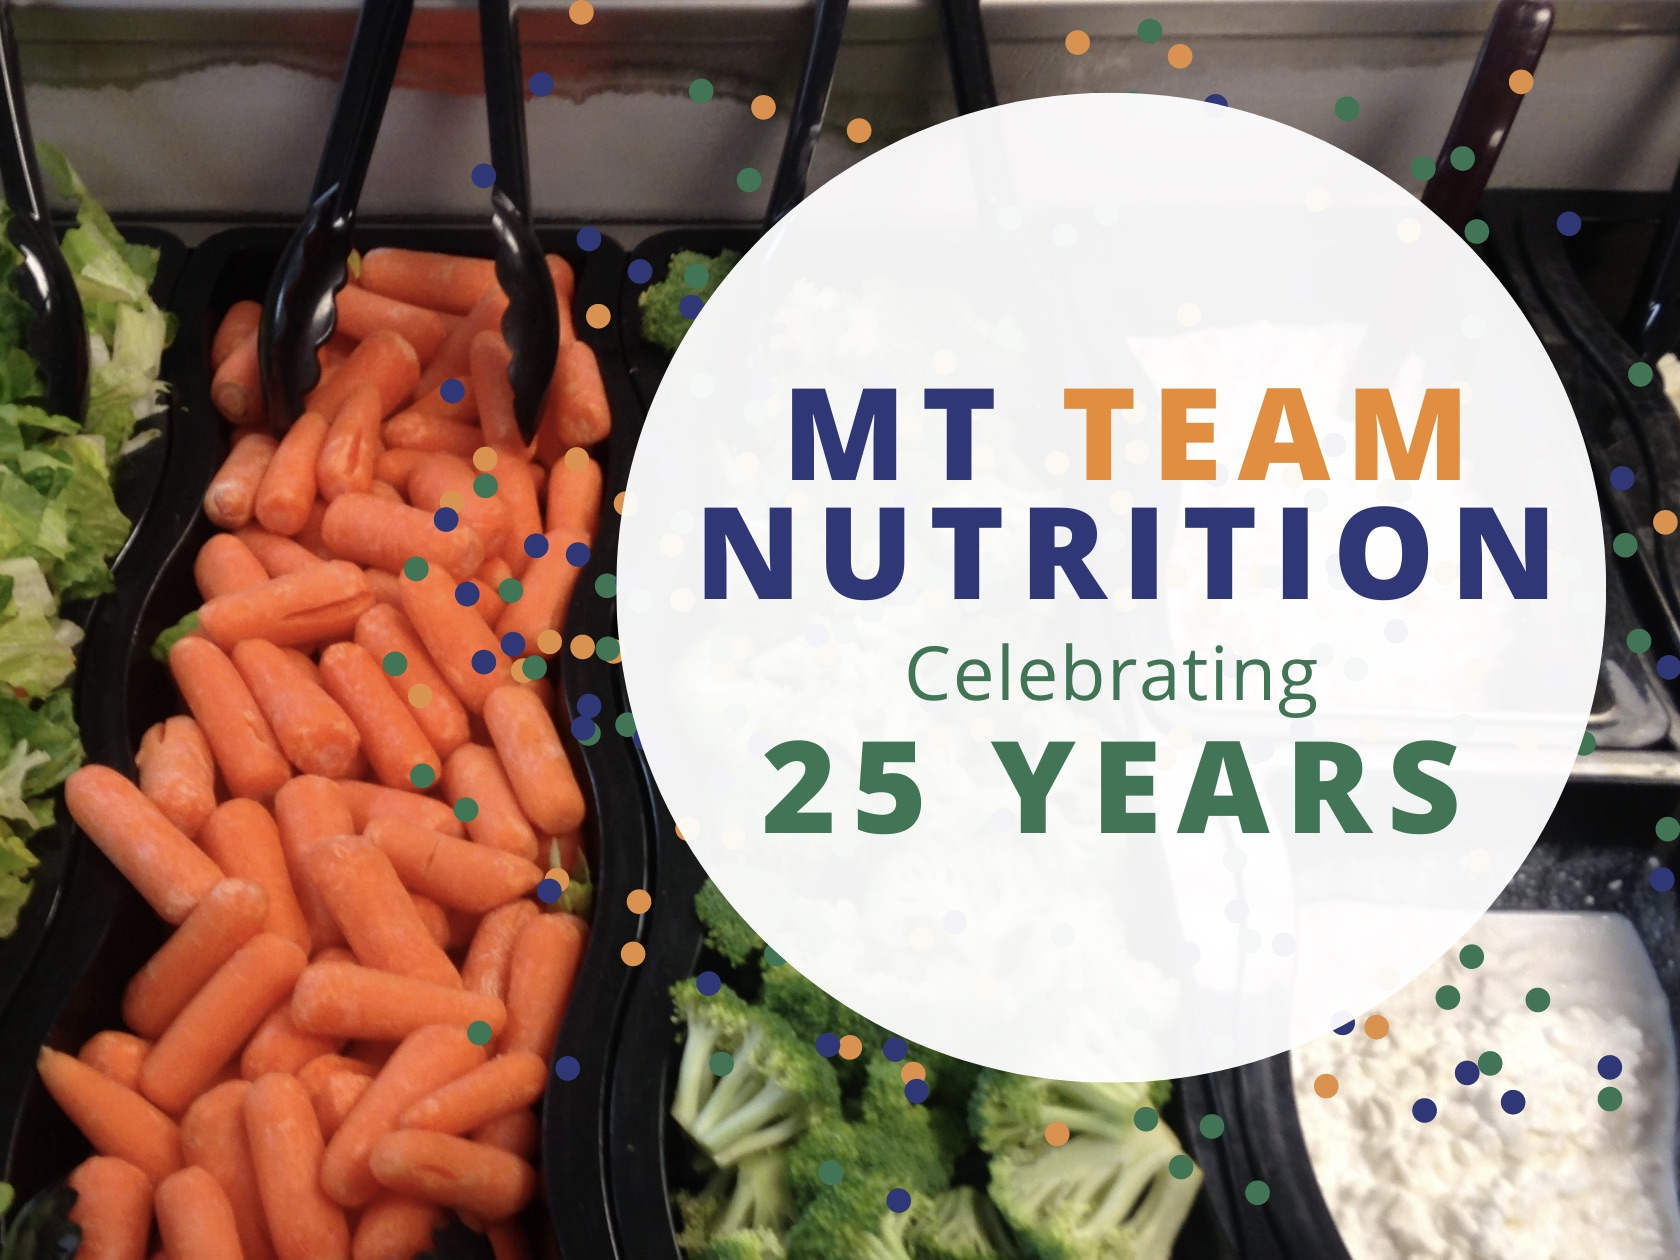 Celebrating 25 Years of Montana Team Nutrition!